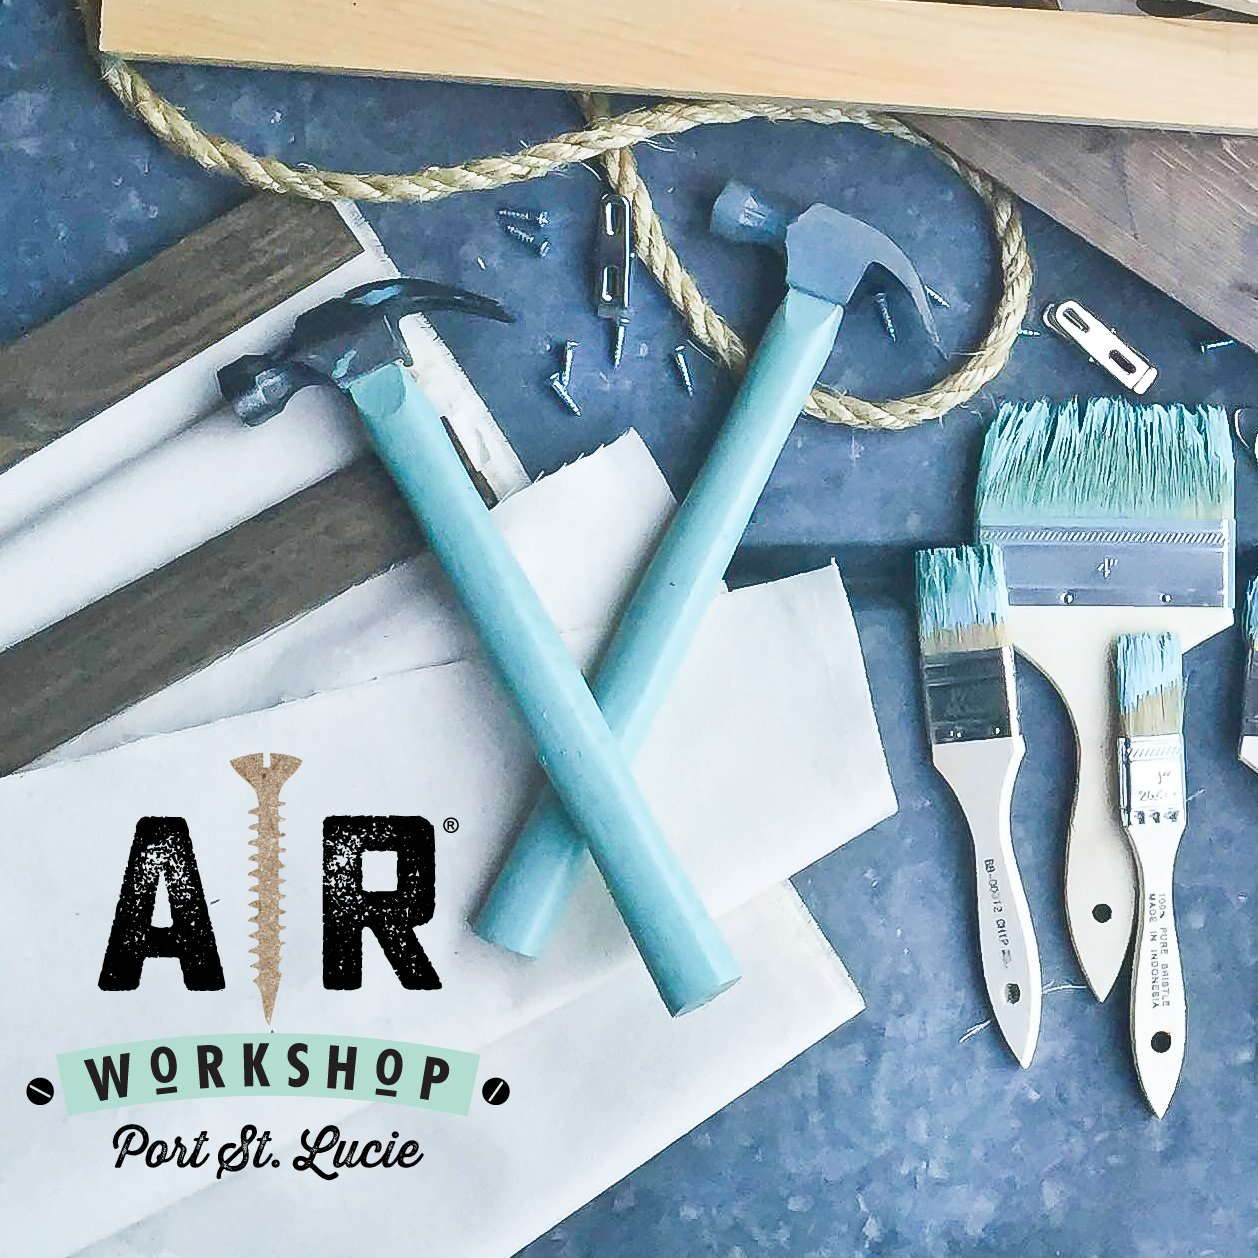 AR Workshop Port St  Lucie - Wine and Painting Wood Sign